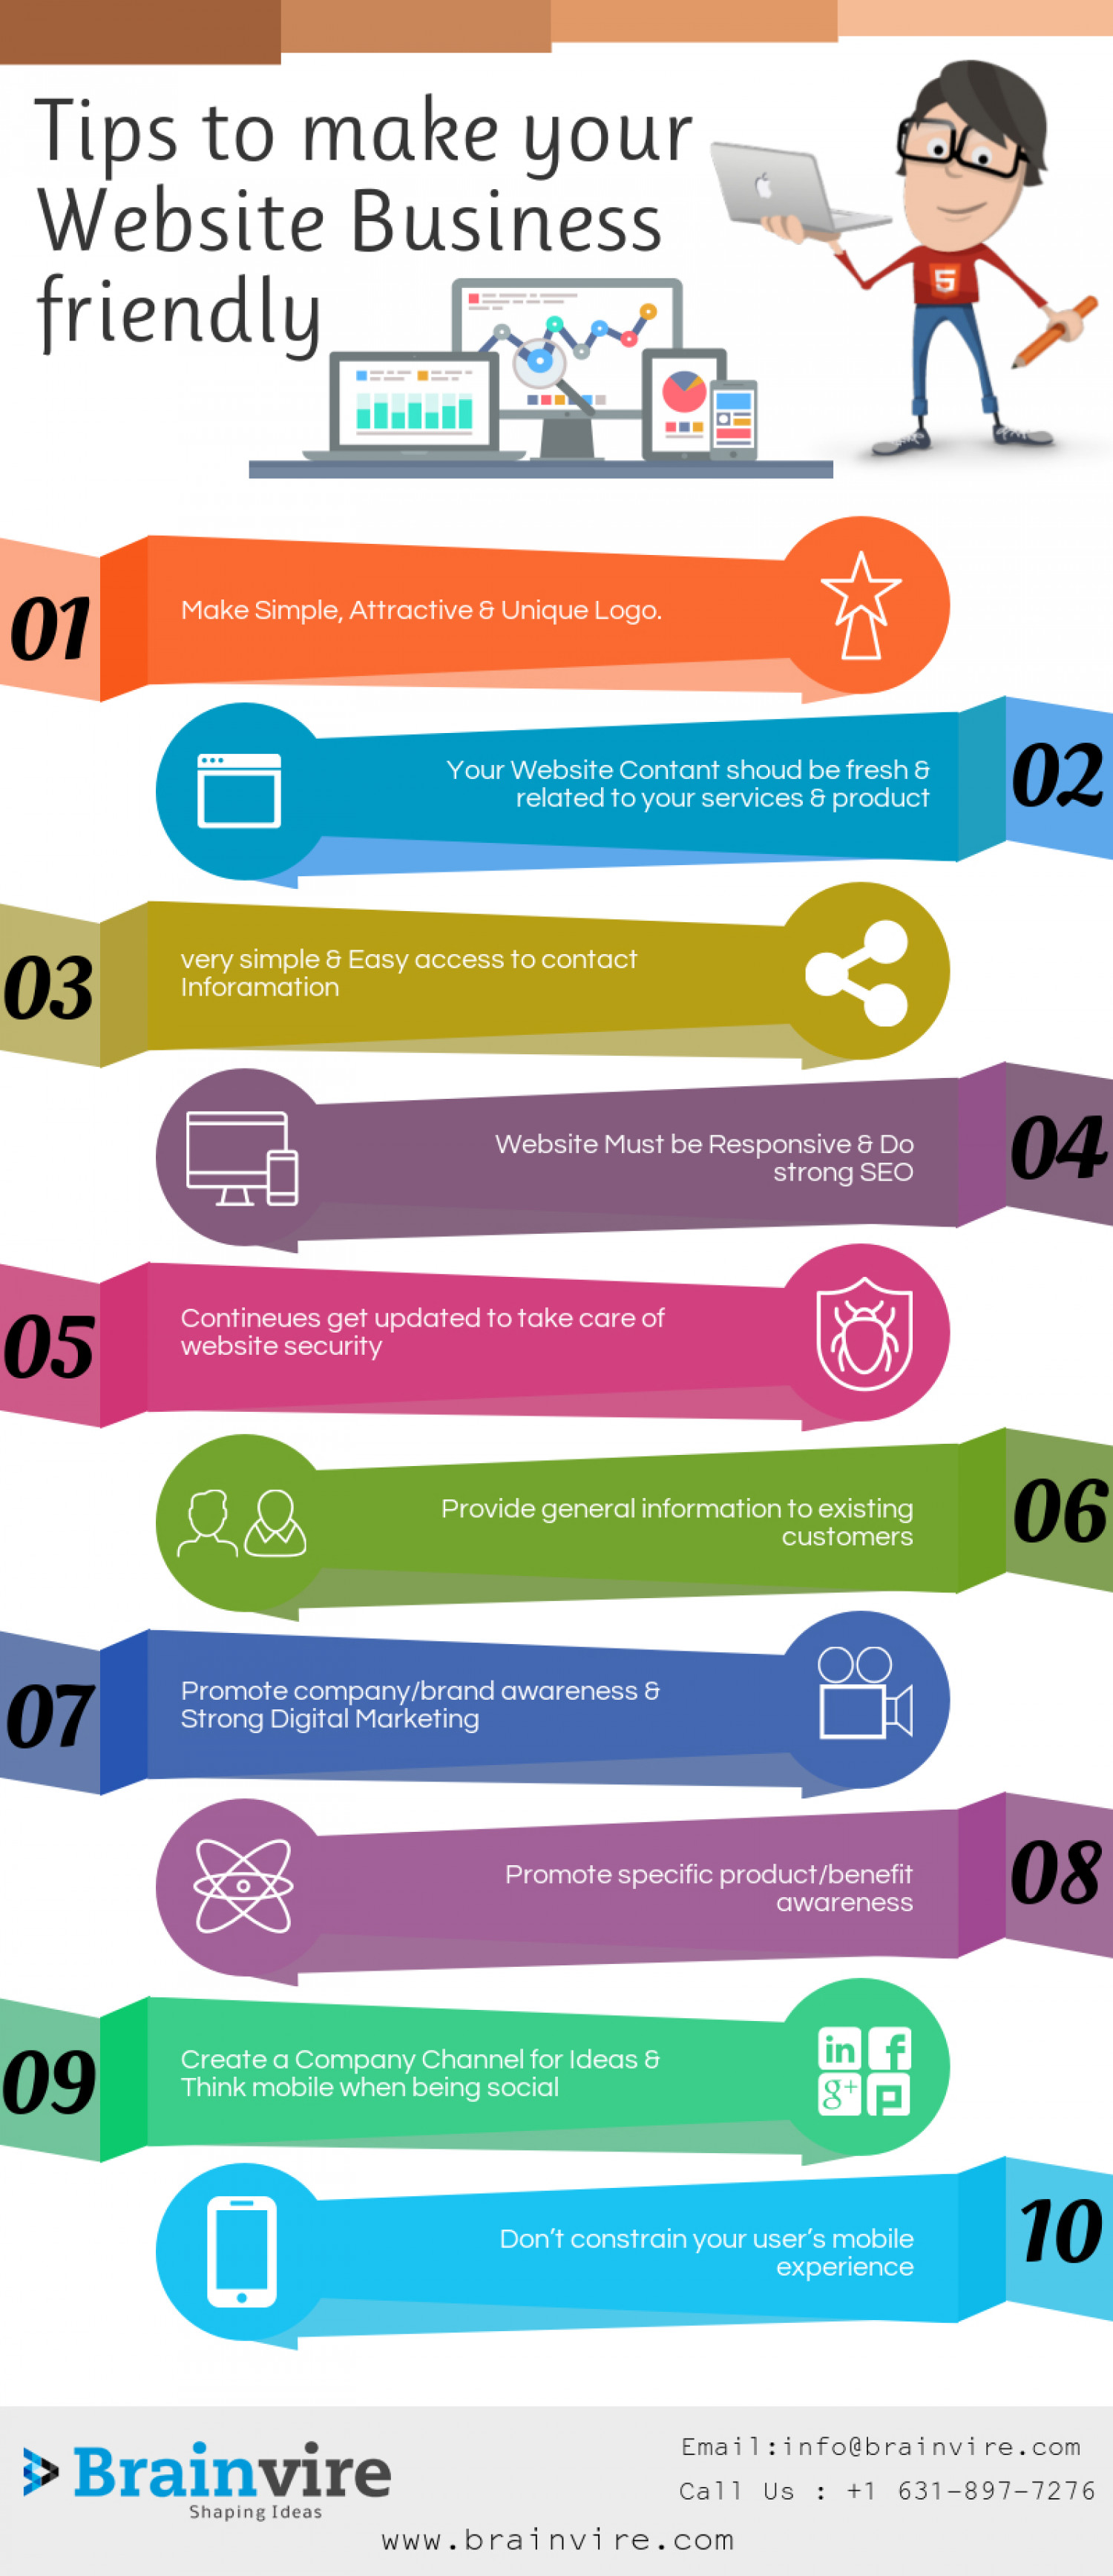 Tips to make your Website Business friendly Infographic